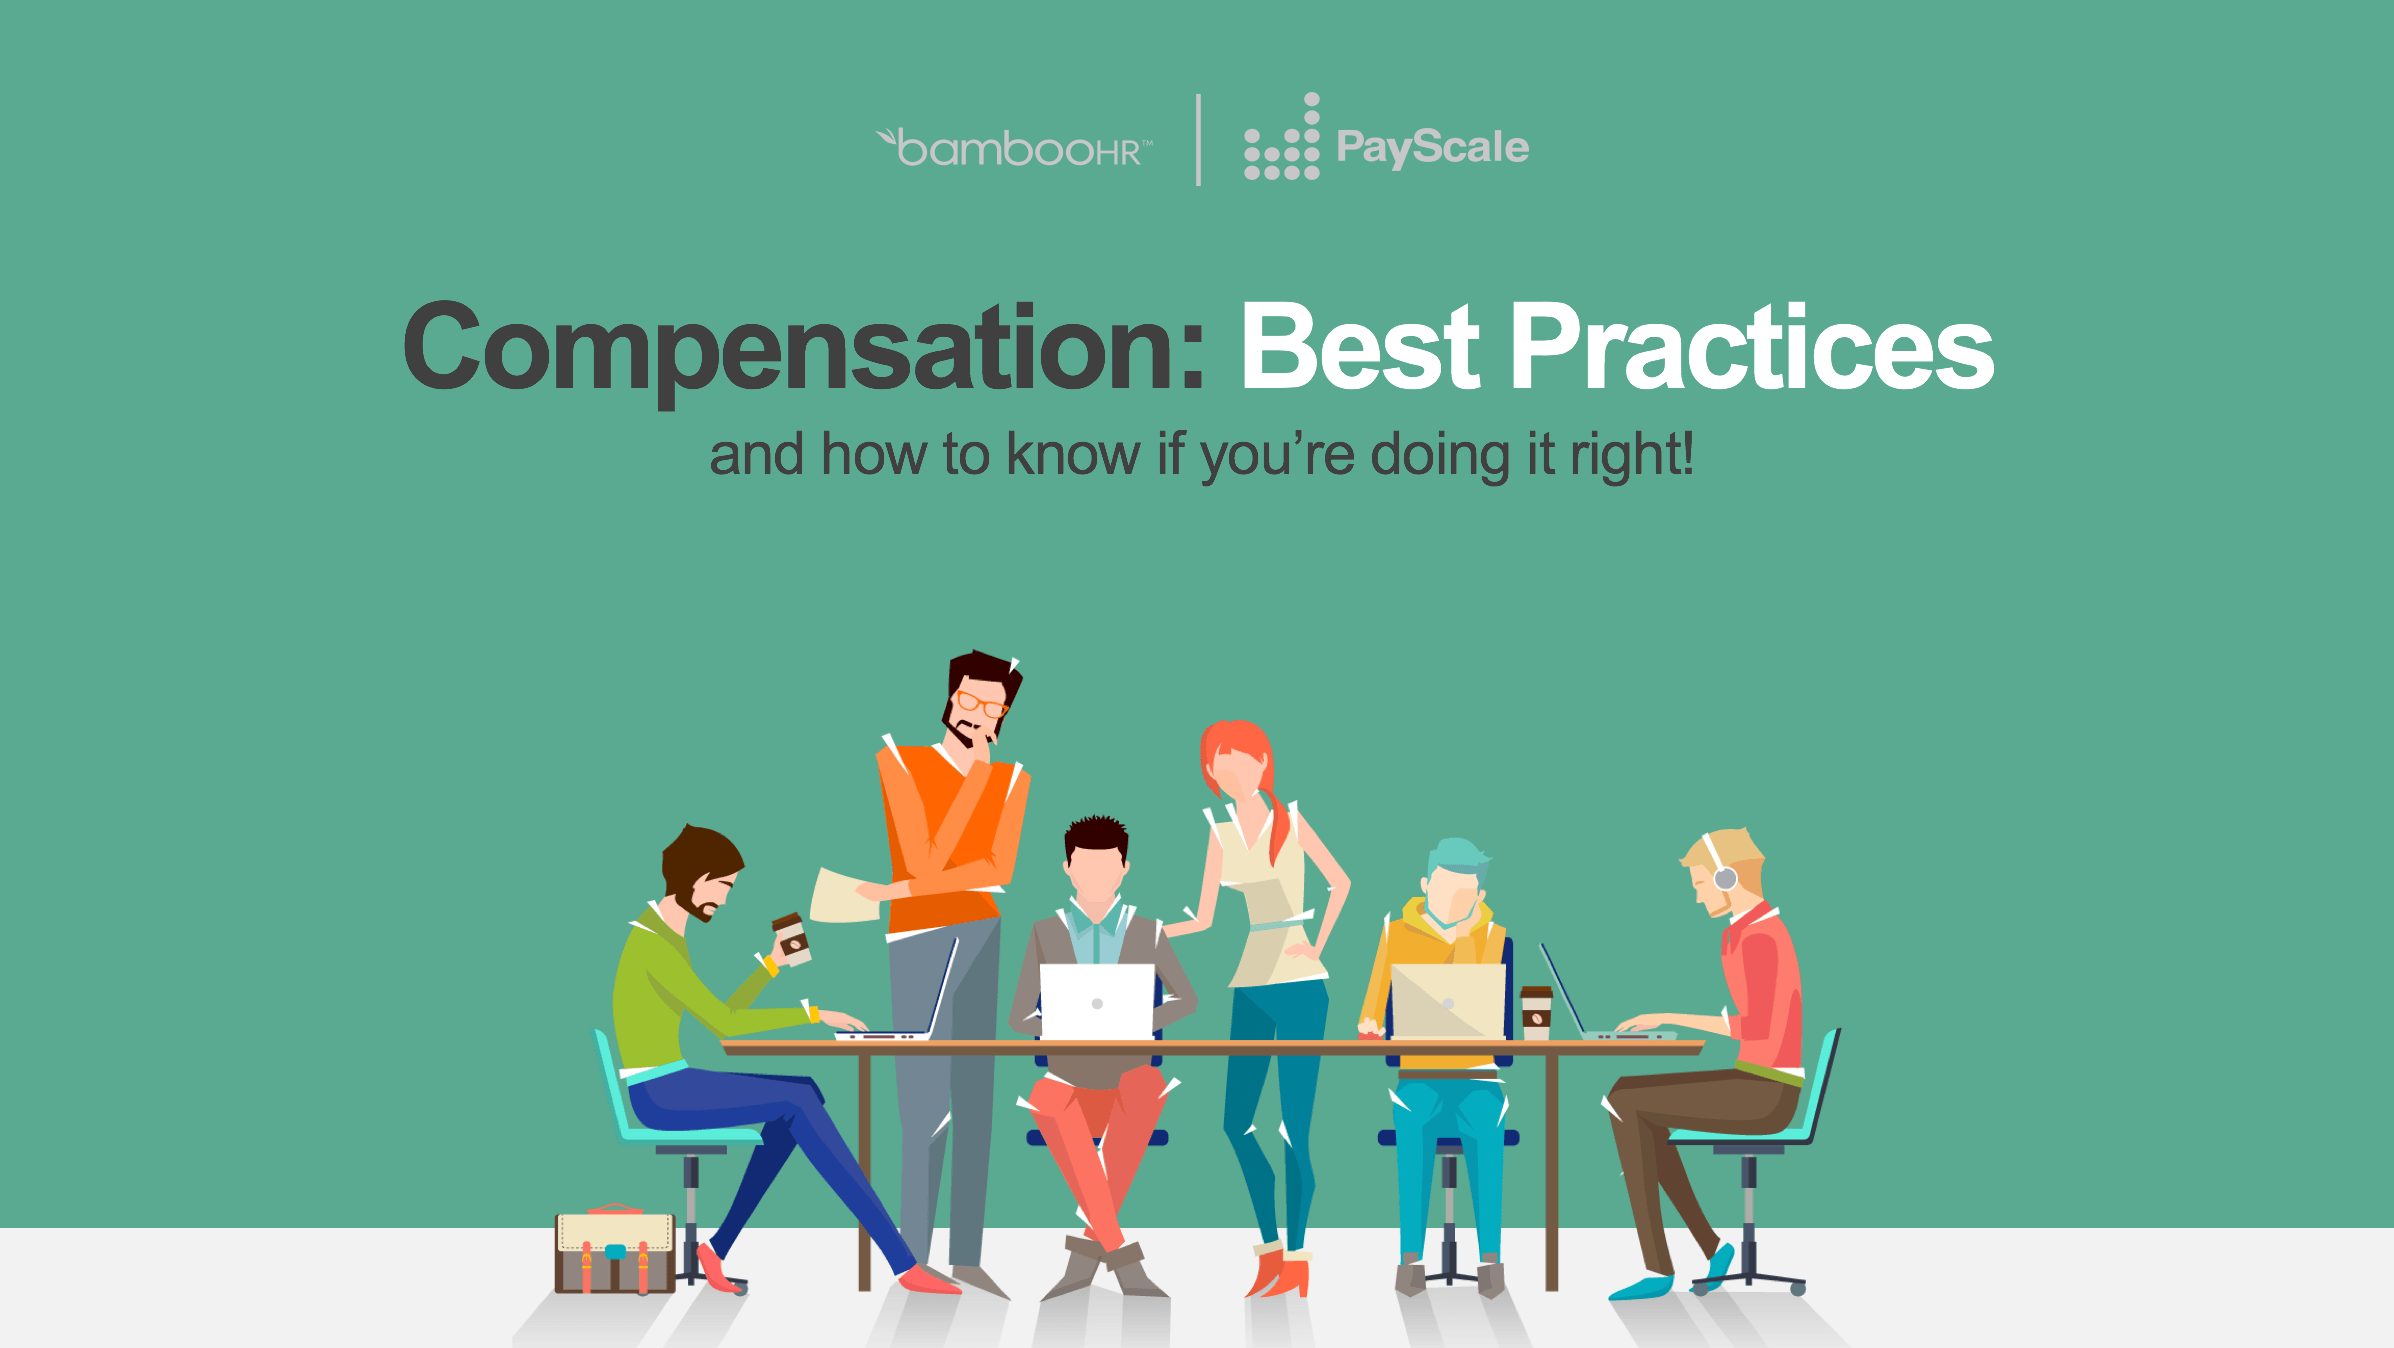 Getting Smart About Compensation: How to Know If You're Doing It Right